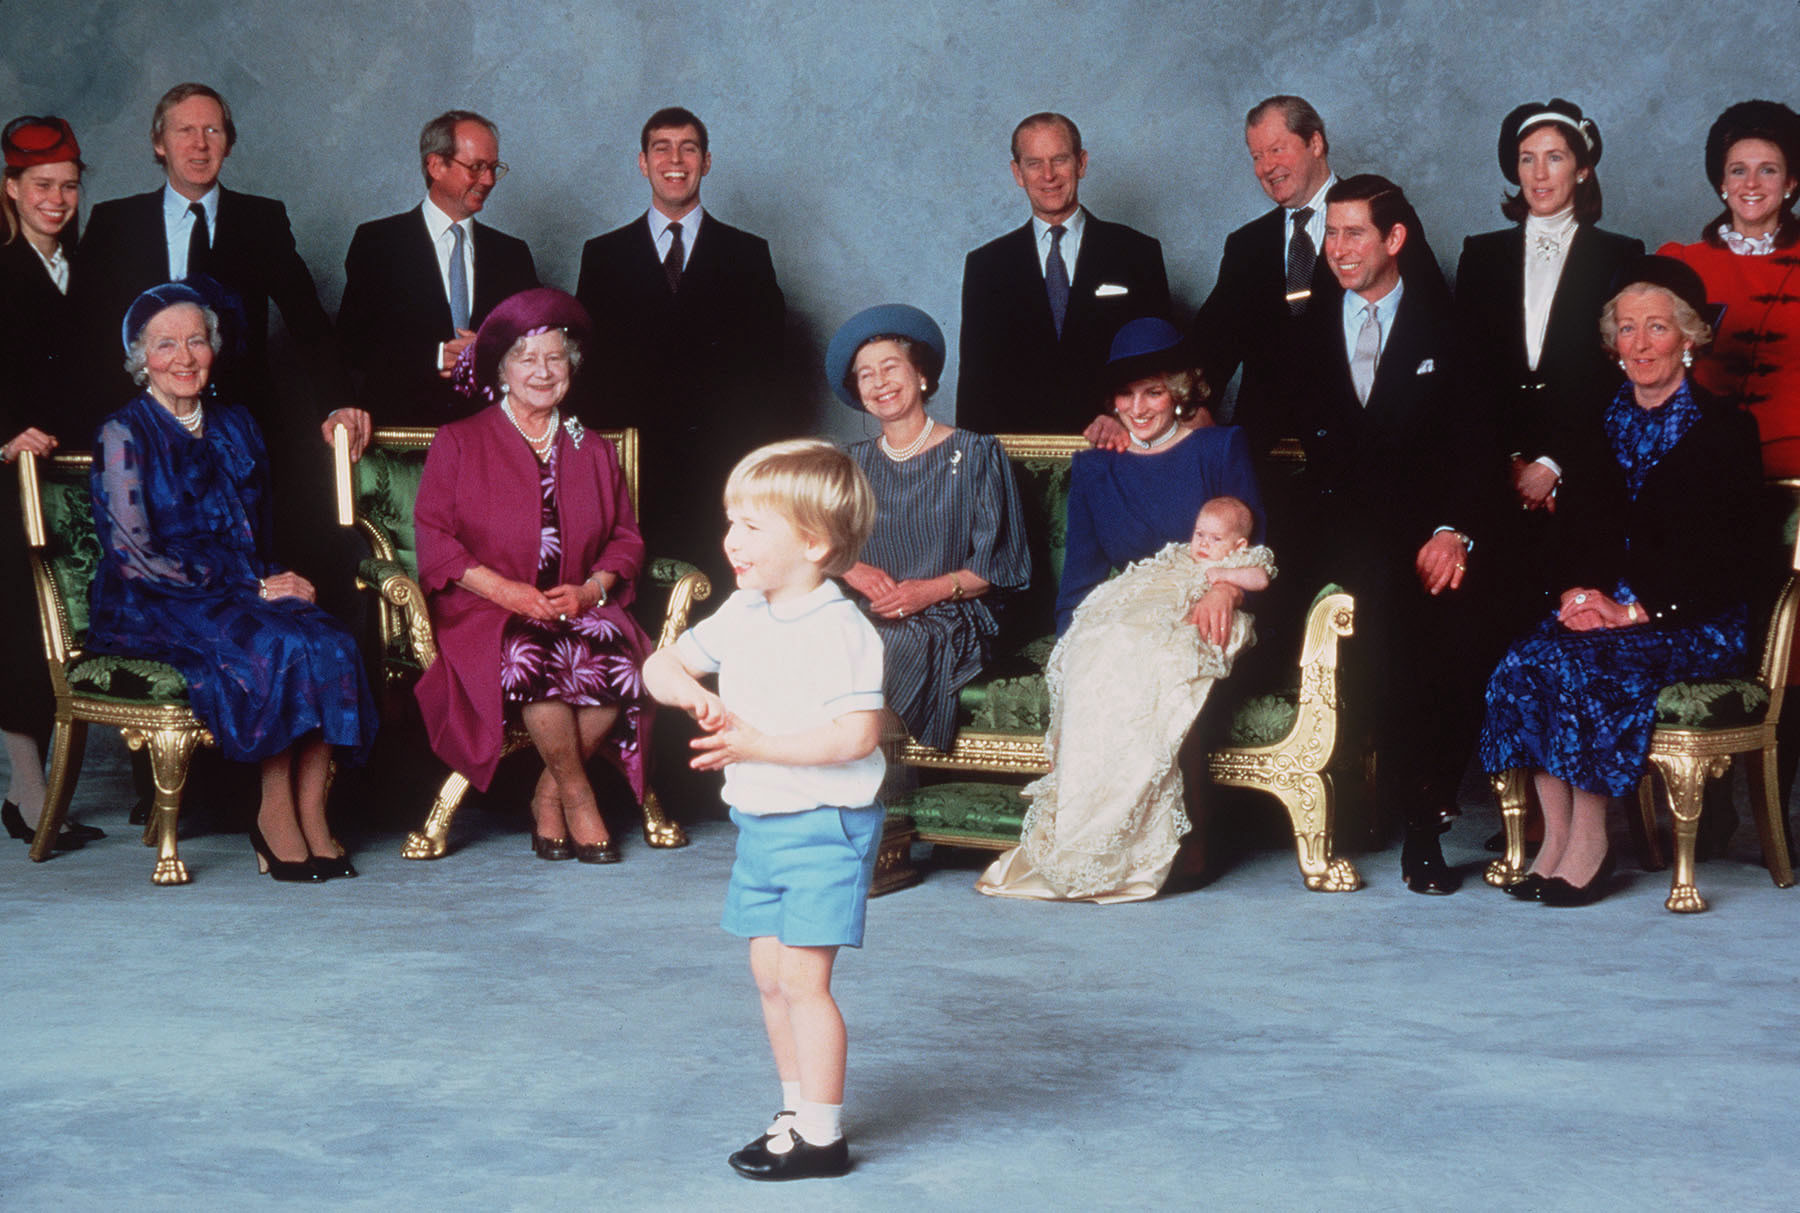 The royal family at the Christening of Prince Harry with Prince William in the foreground. Note the heirloom christening gown on Prince Harry.